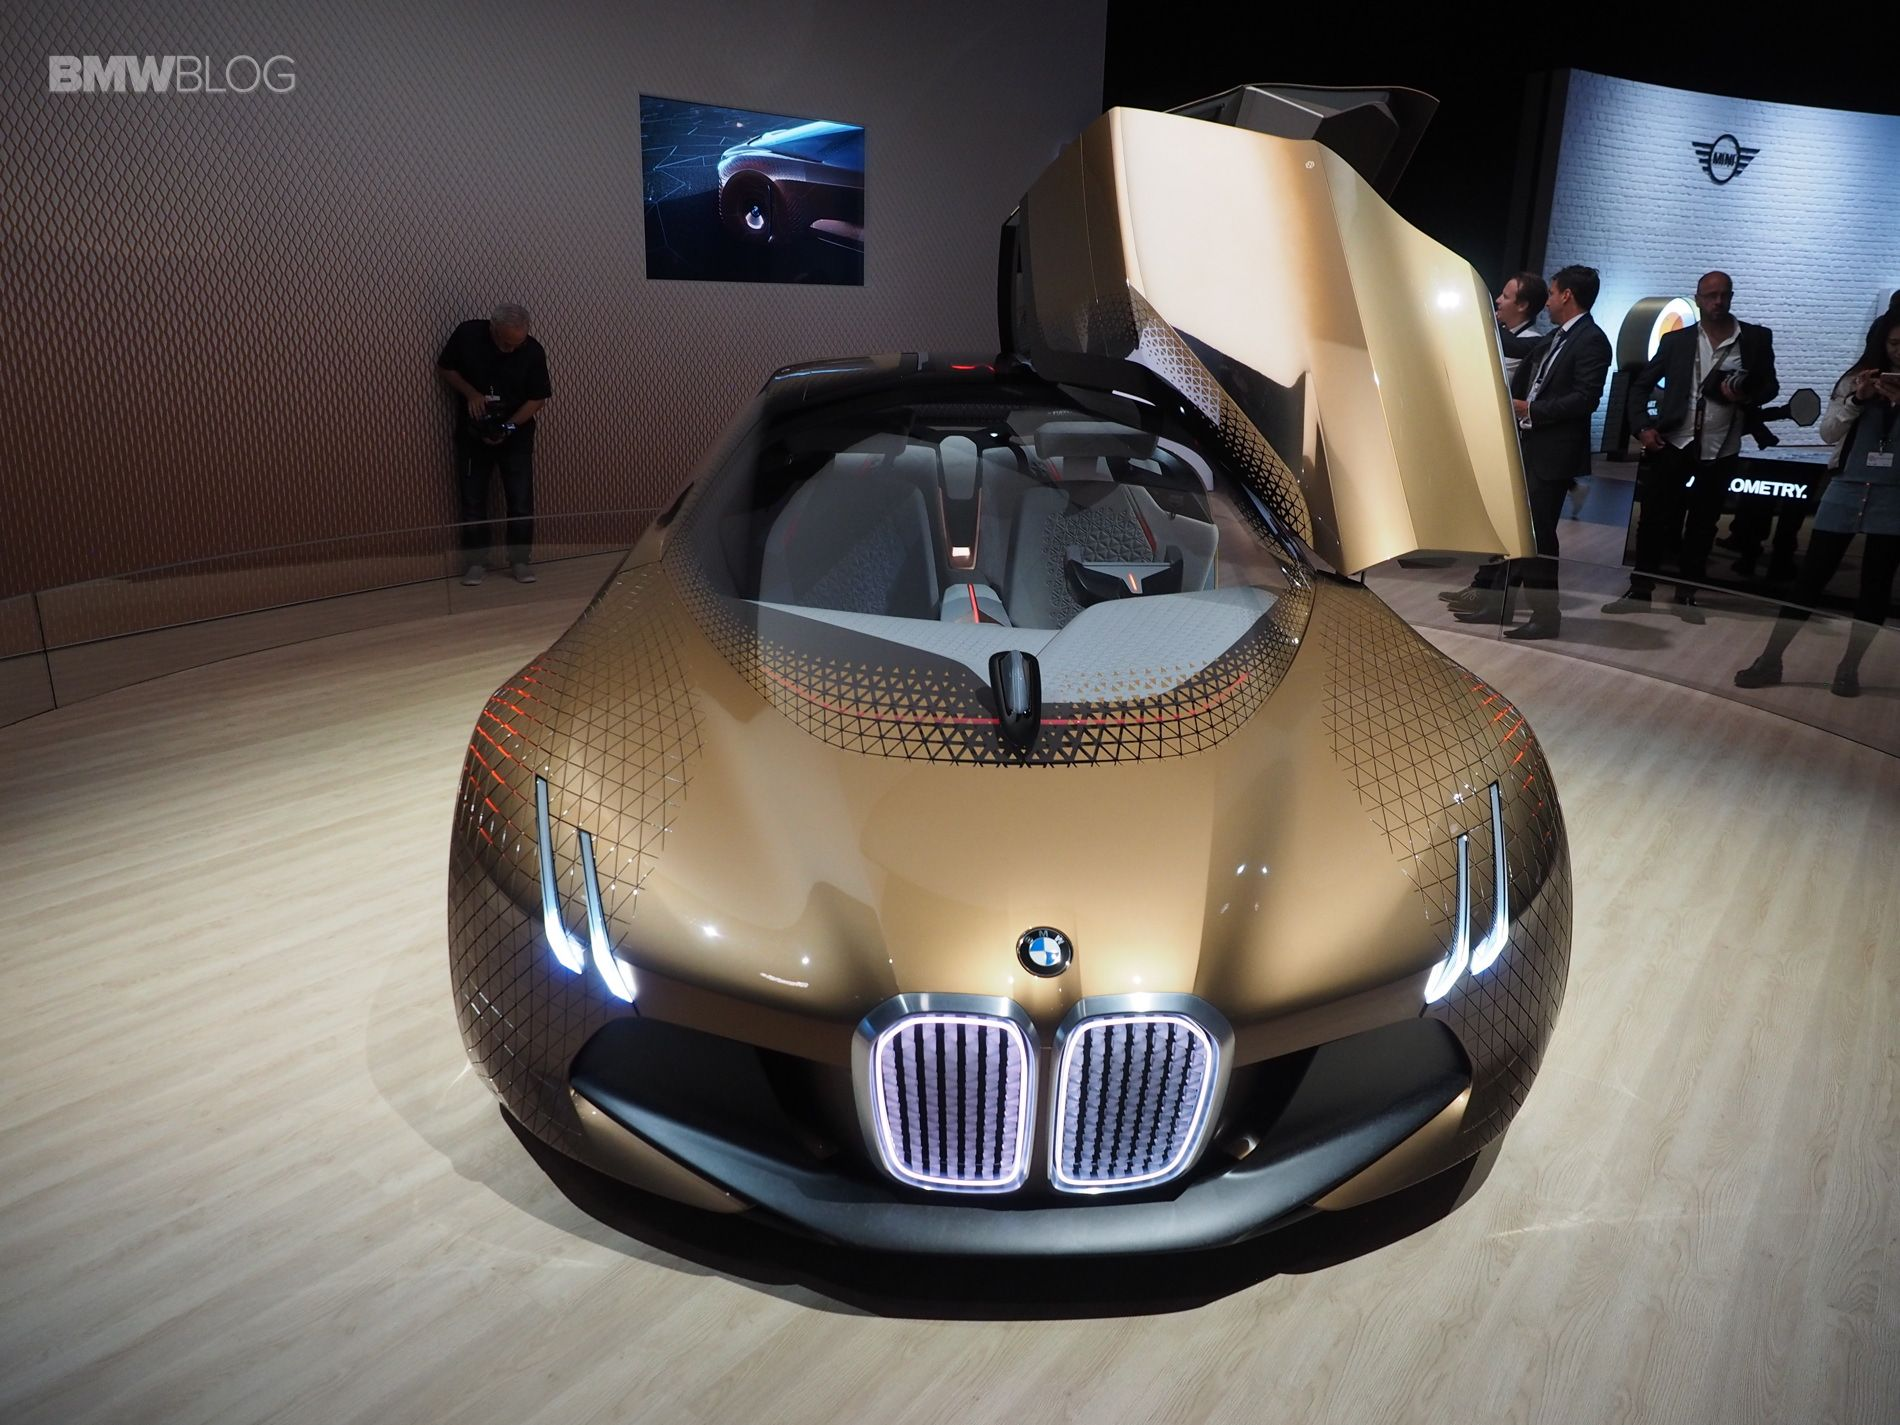 Bmw Vision Next 100 Concept Makes Its Final Stop In Los Angeles